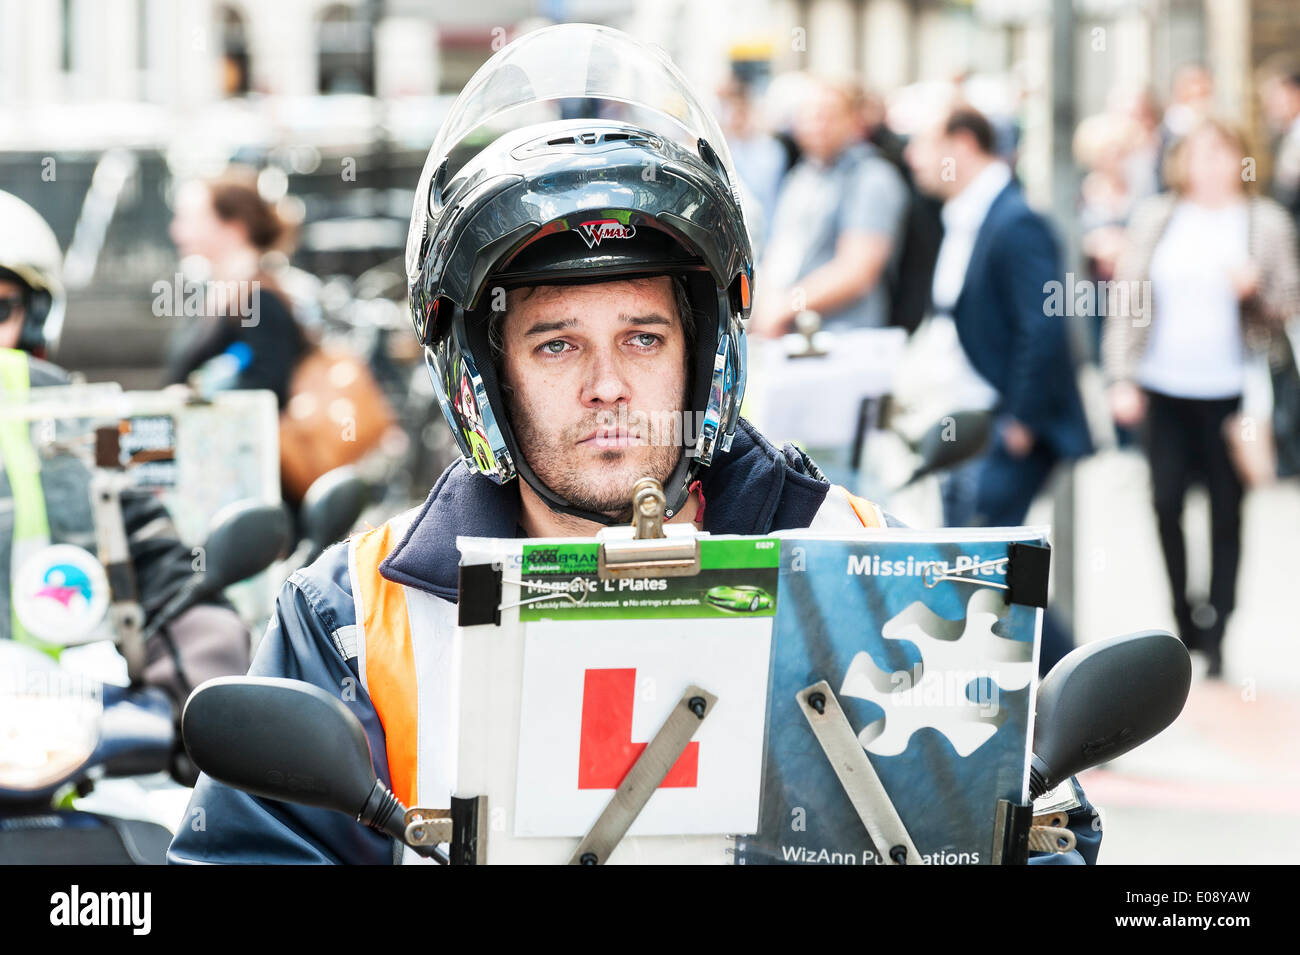 London, UK. 6th May 2014, A very fed up trainee taxi driver participating in the protest over the refusal to place a Black Cab taxi rank outside the entrance to The Shard. Photographer:  Gordon Scammell/Alamy Live News - Stock Image